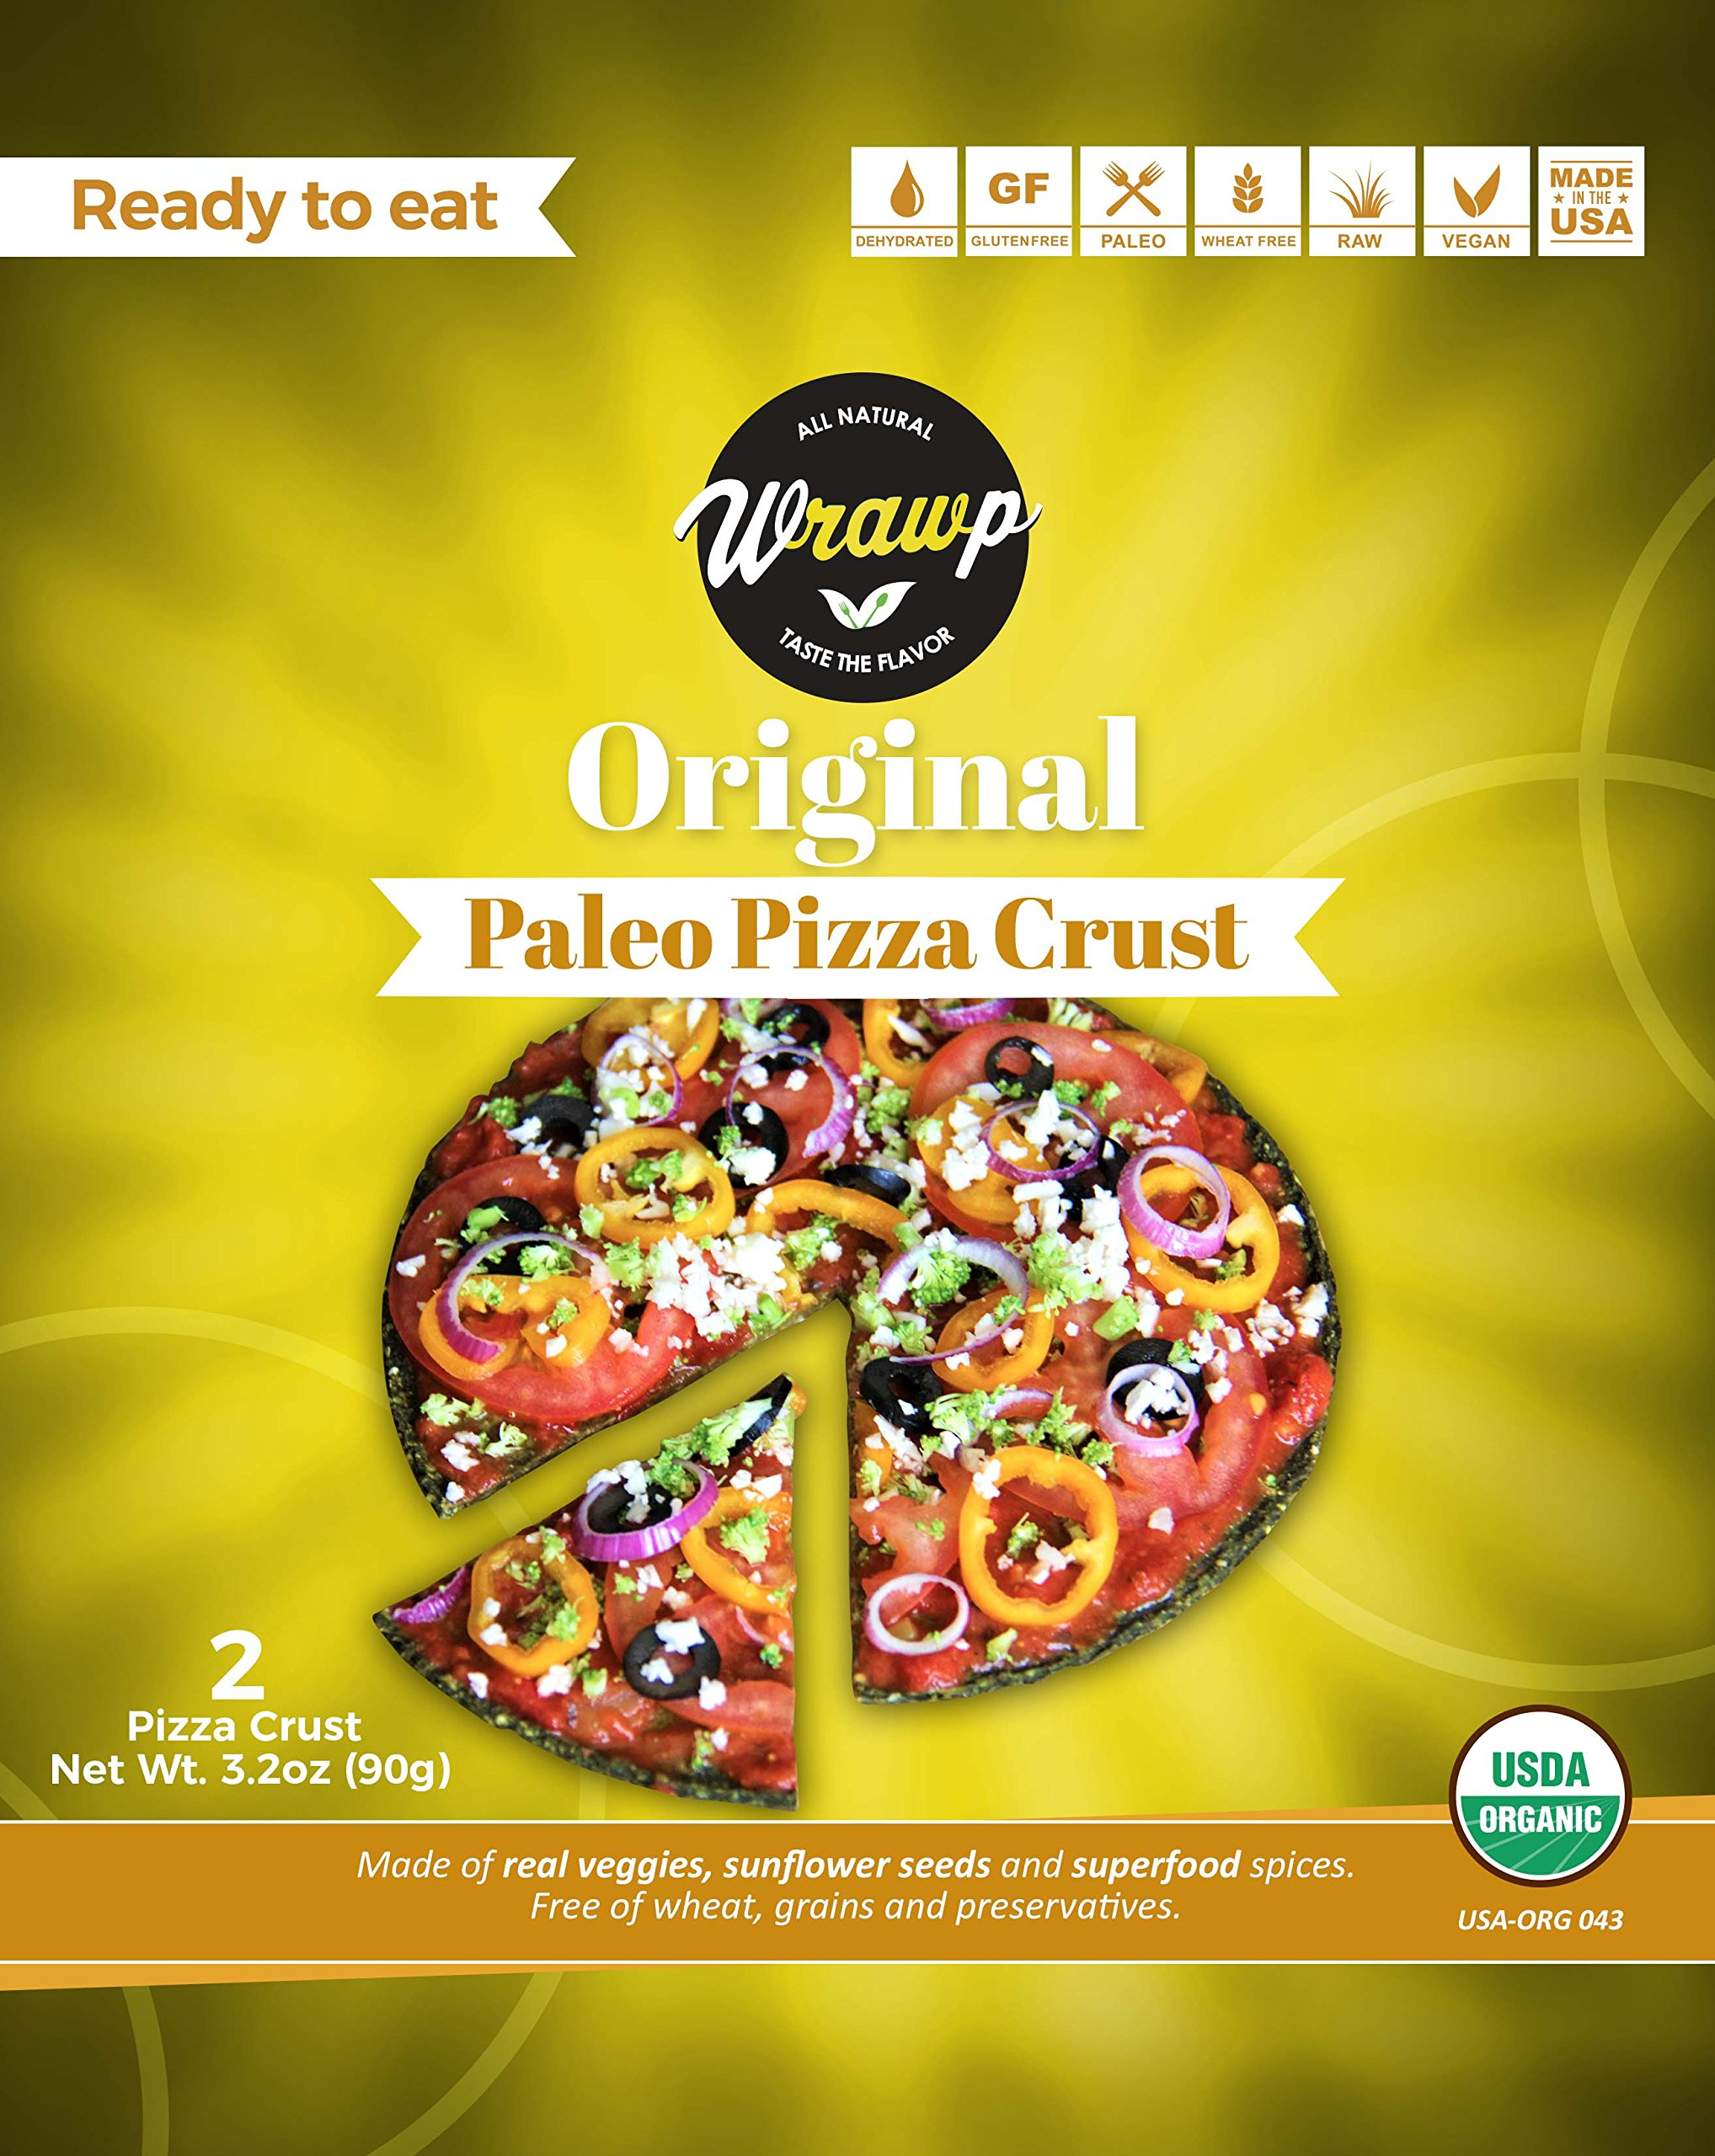 Paleo Pizza Crusts 2 Pack Pizza Crusts - Original (Raw, Vegan, Paleo, Gluten Free wraps) Wheat Free